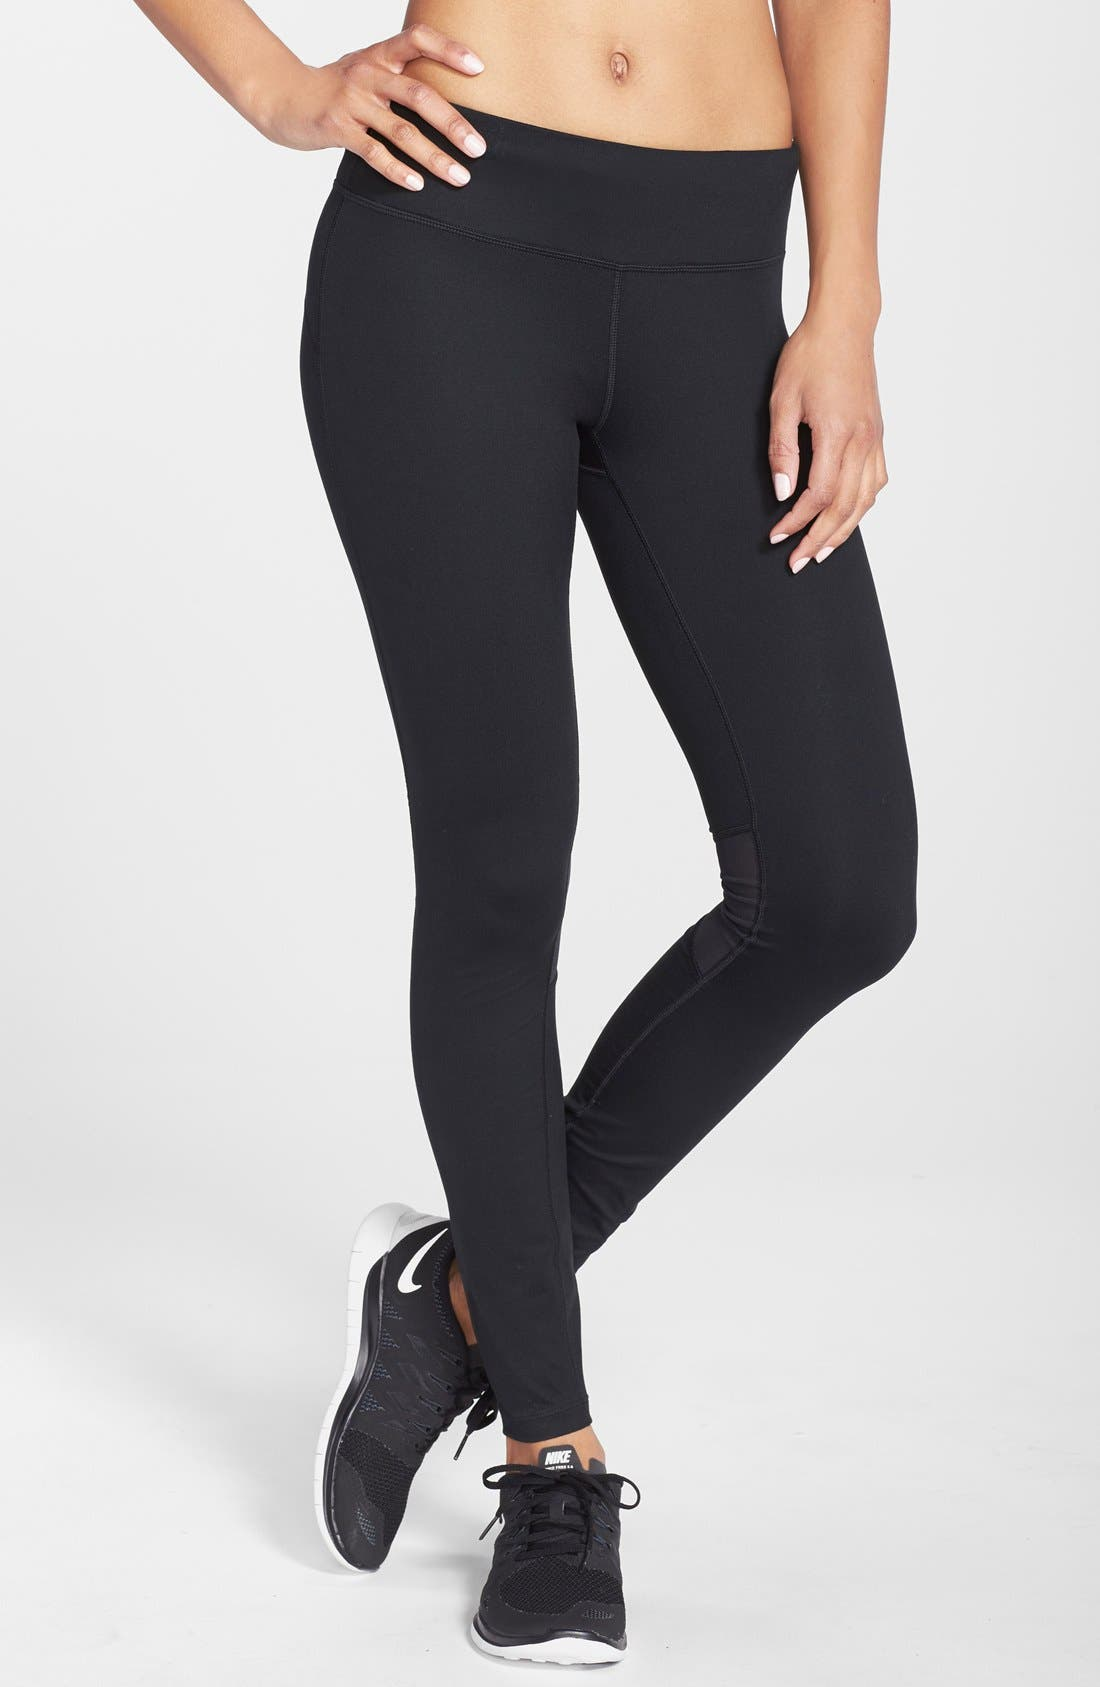 NIKE 'Epic Run' Mesh Insert Dri-FIT Tights